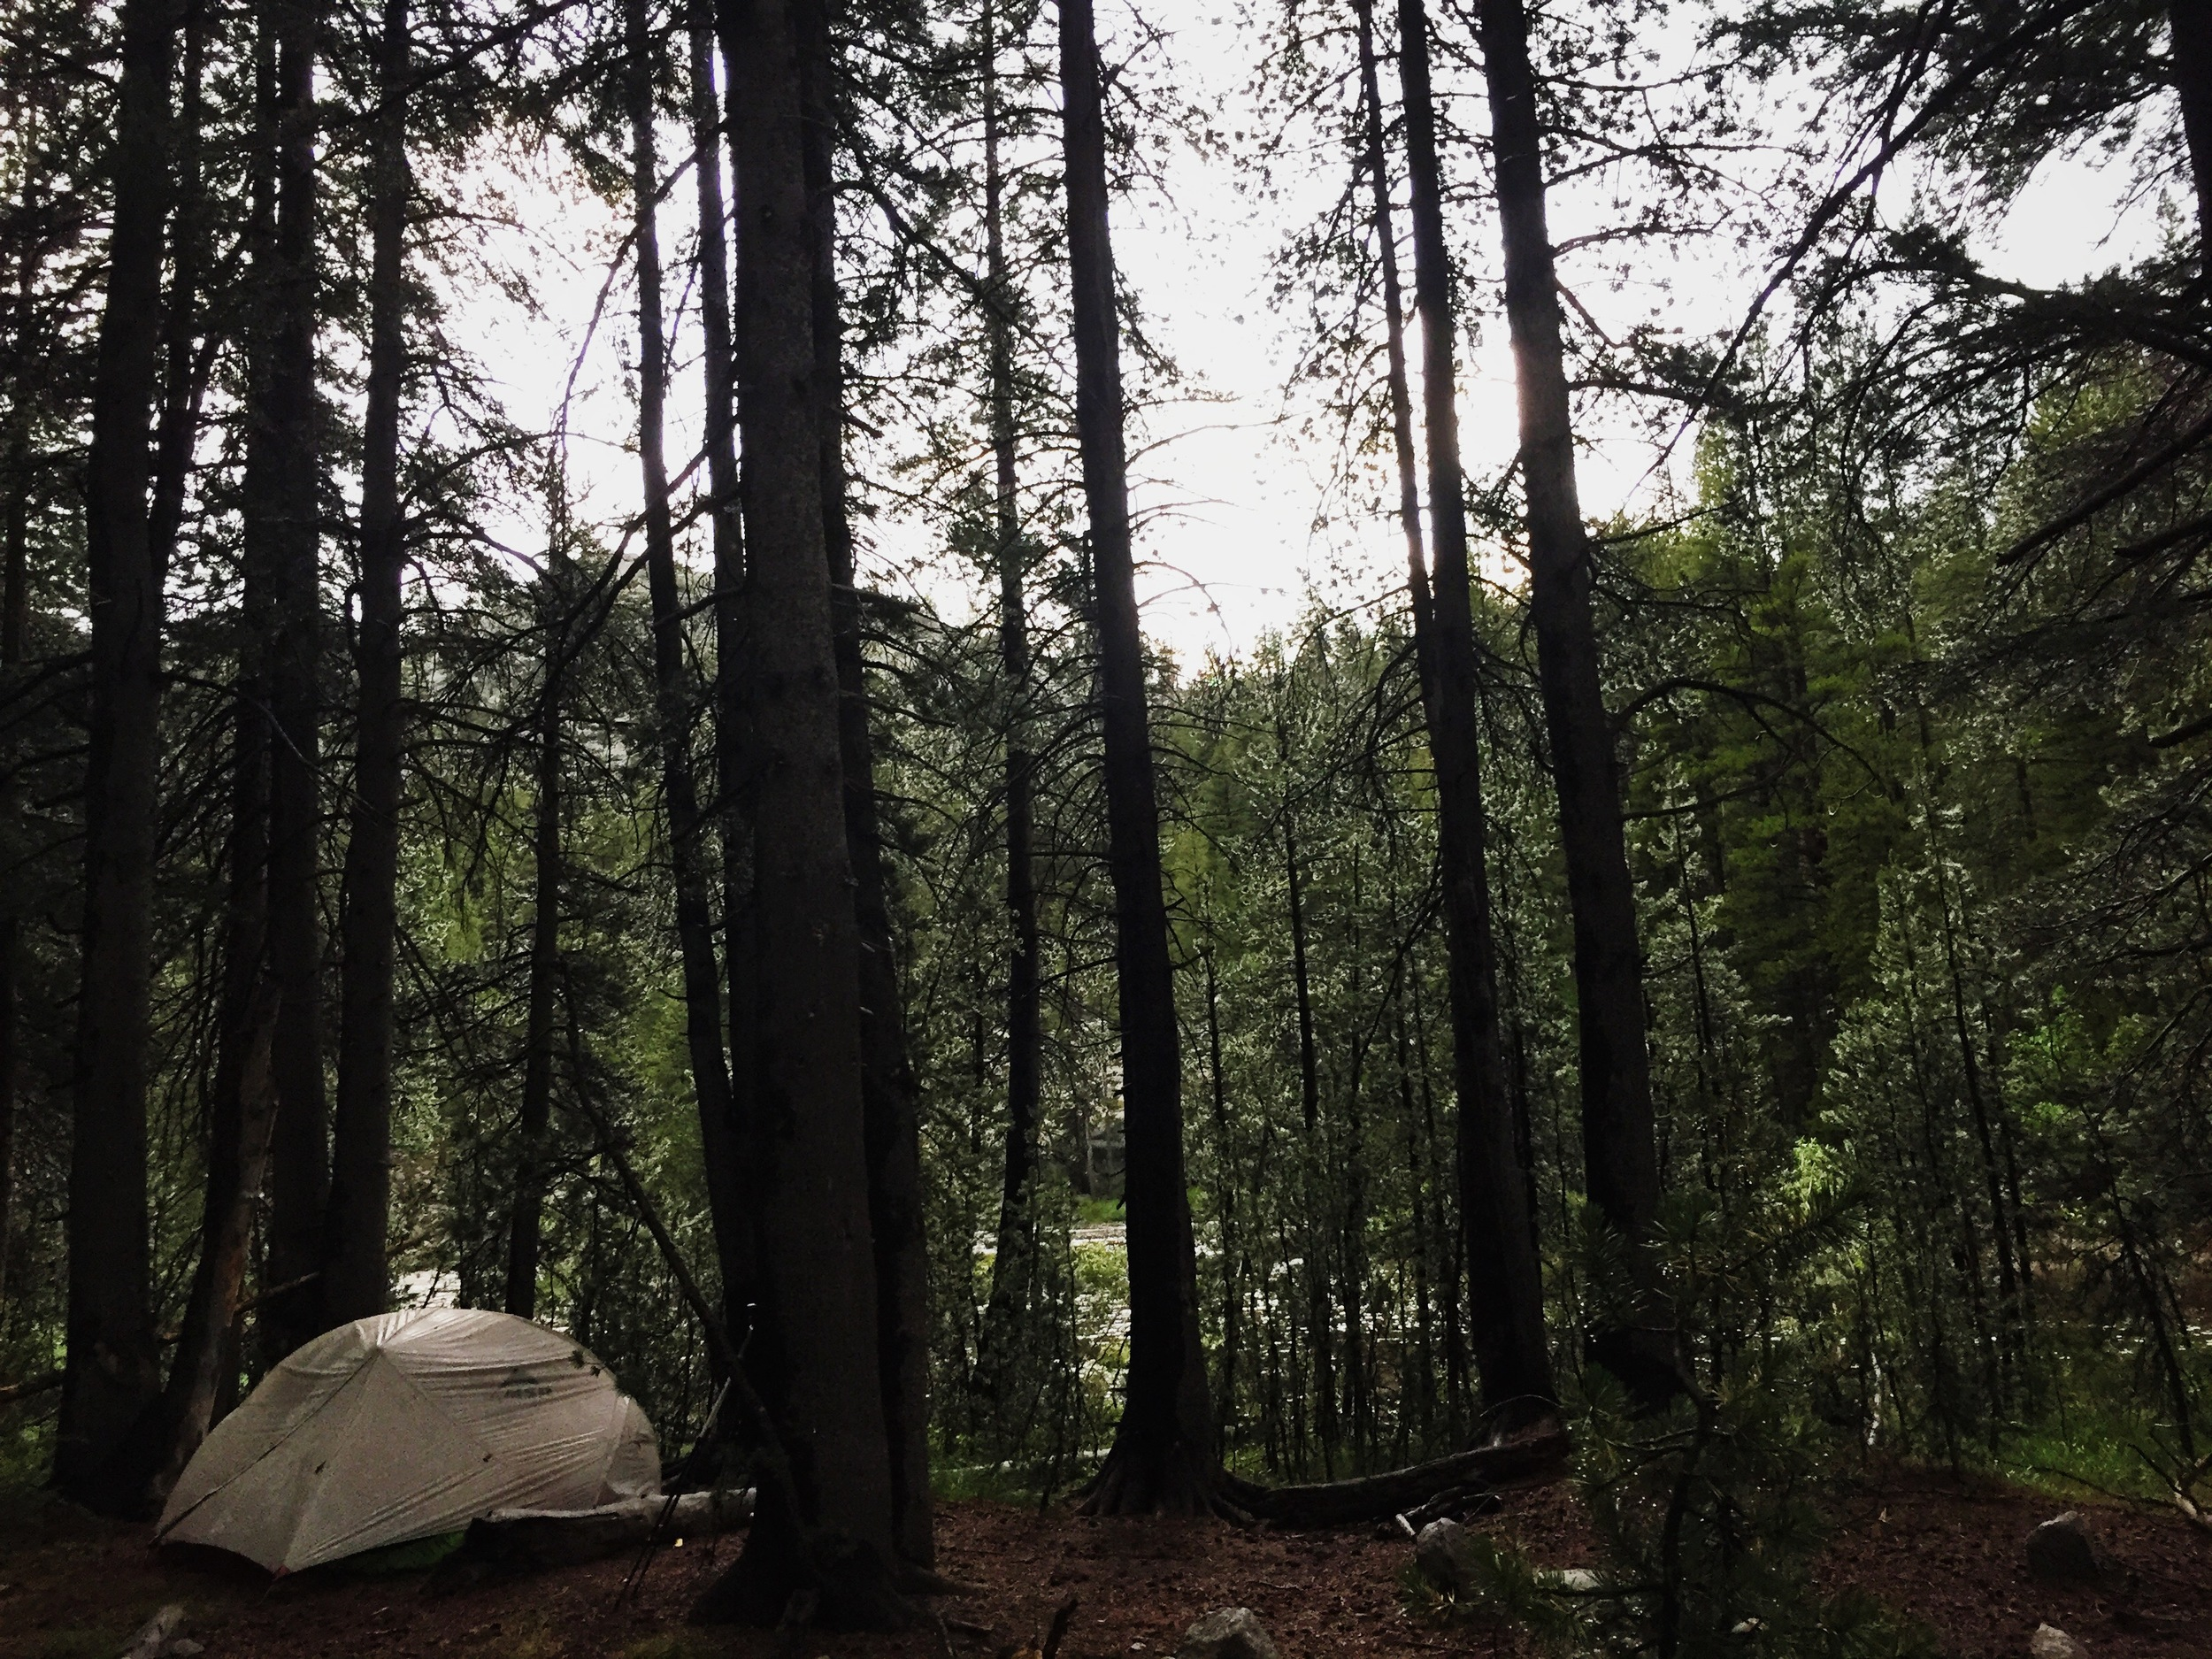 Day 7: camped near Bear Creek near the junction to Lake Italy.